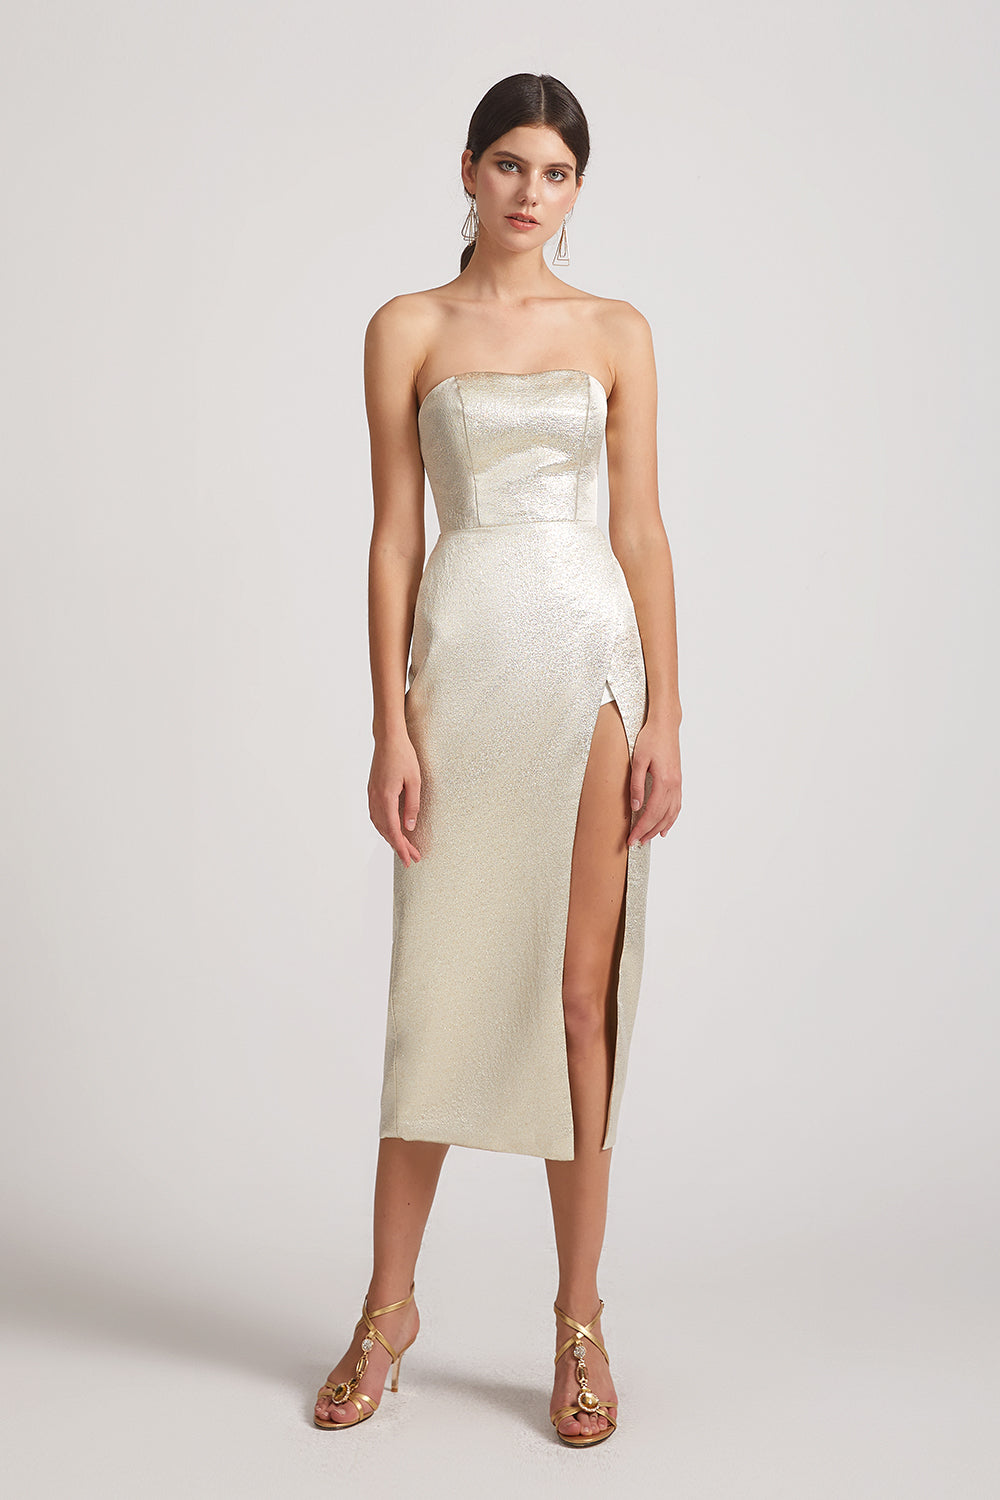 sexy metallic slit bridesmaids dresses